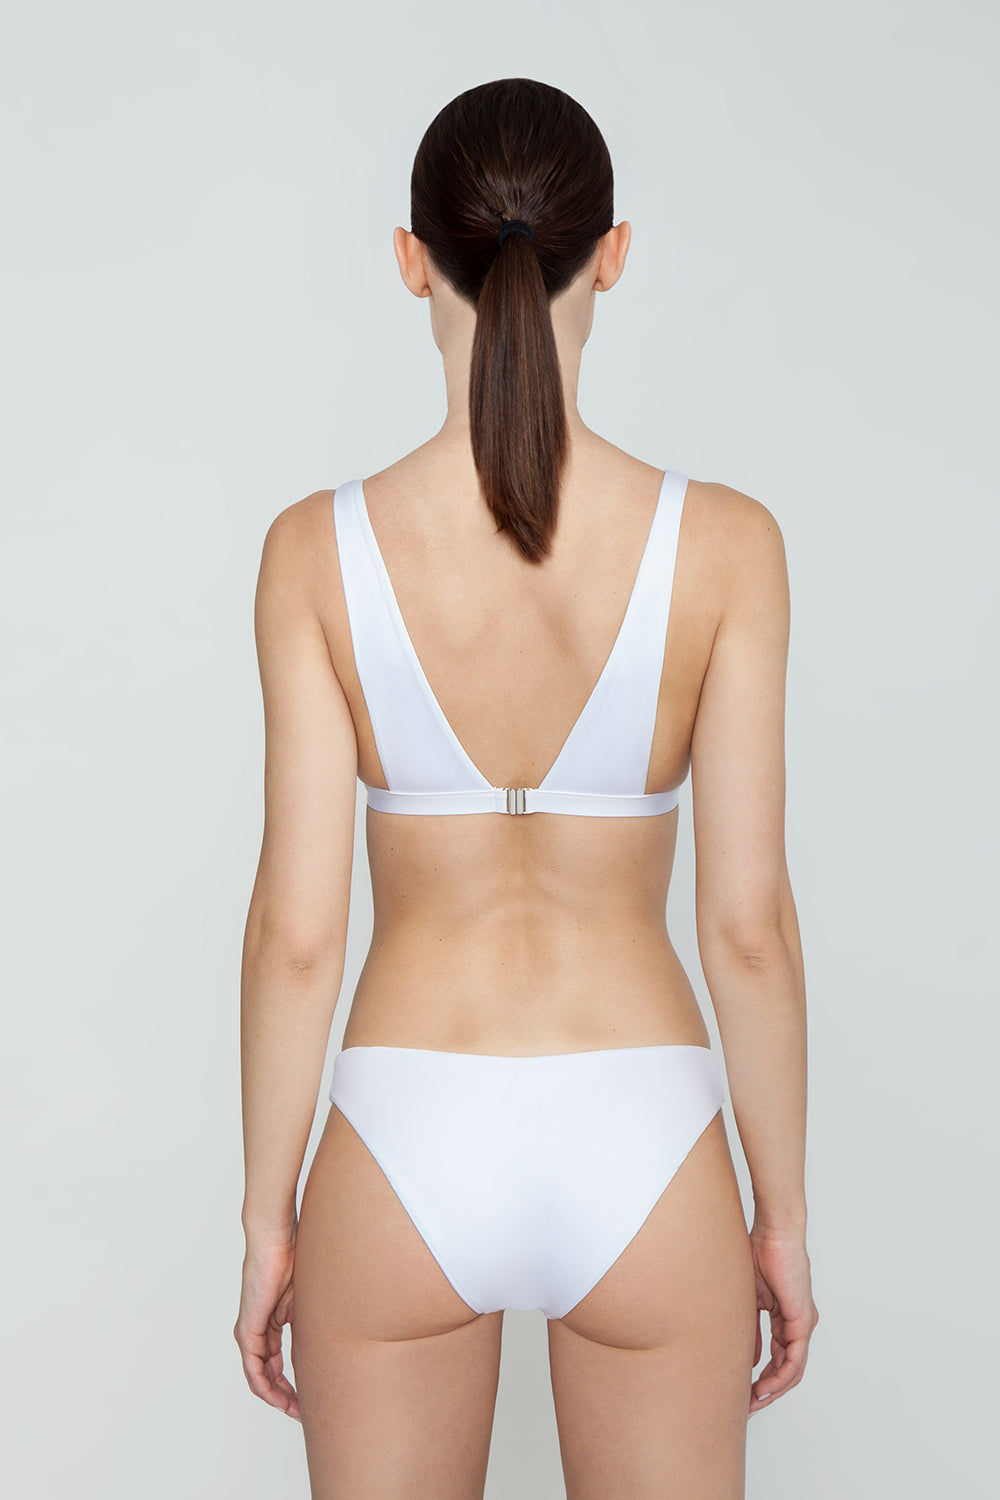 MONICA HANSEN BEACHWEAR Babe Watch Long Triangle Bikini Top - White Bikini Top | White| Monica Hansen Beachwear Babe Watch Long Triangle Bikini Top - White Features:  Plunging U-neckline Long triangle top Small nickel colored metal clasp in back Double fabric on the inside instead of lining Italian fabric 85% Nylon 15% Elastane Manufactured in Italy Hand wash cold.  Dry Flat Back View